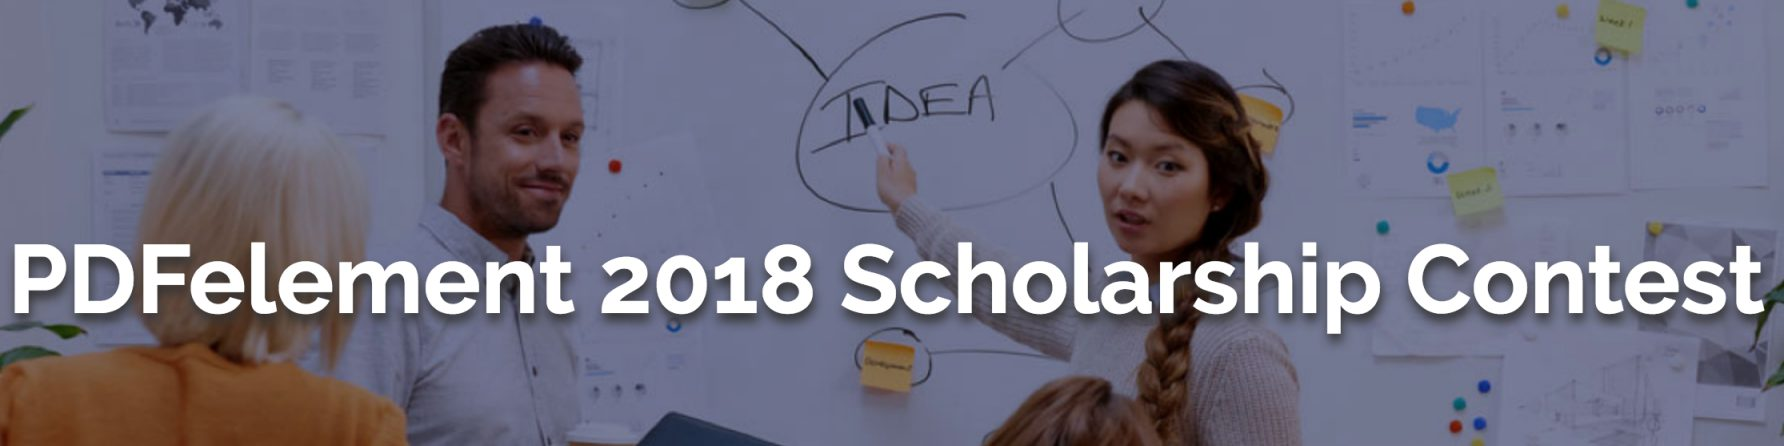 PDFelement 2018 Scholarship Contest